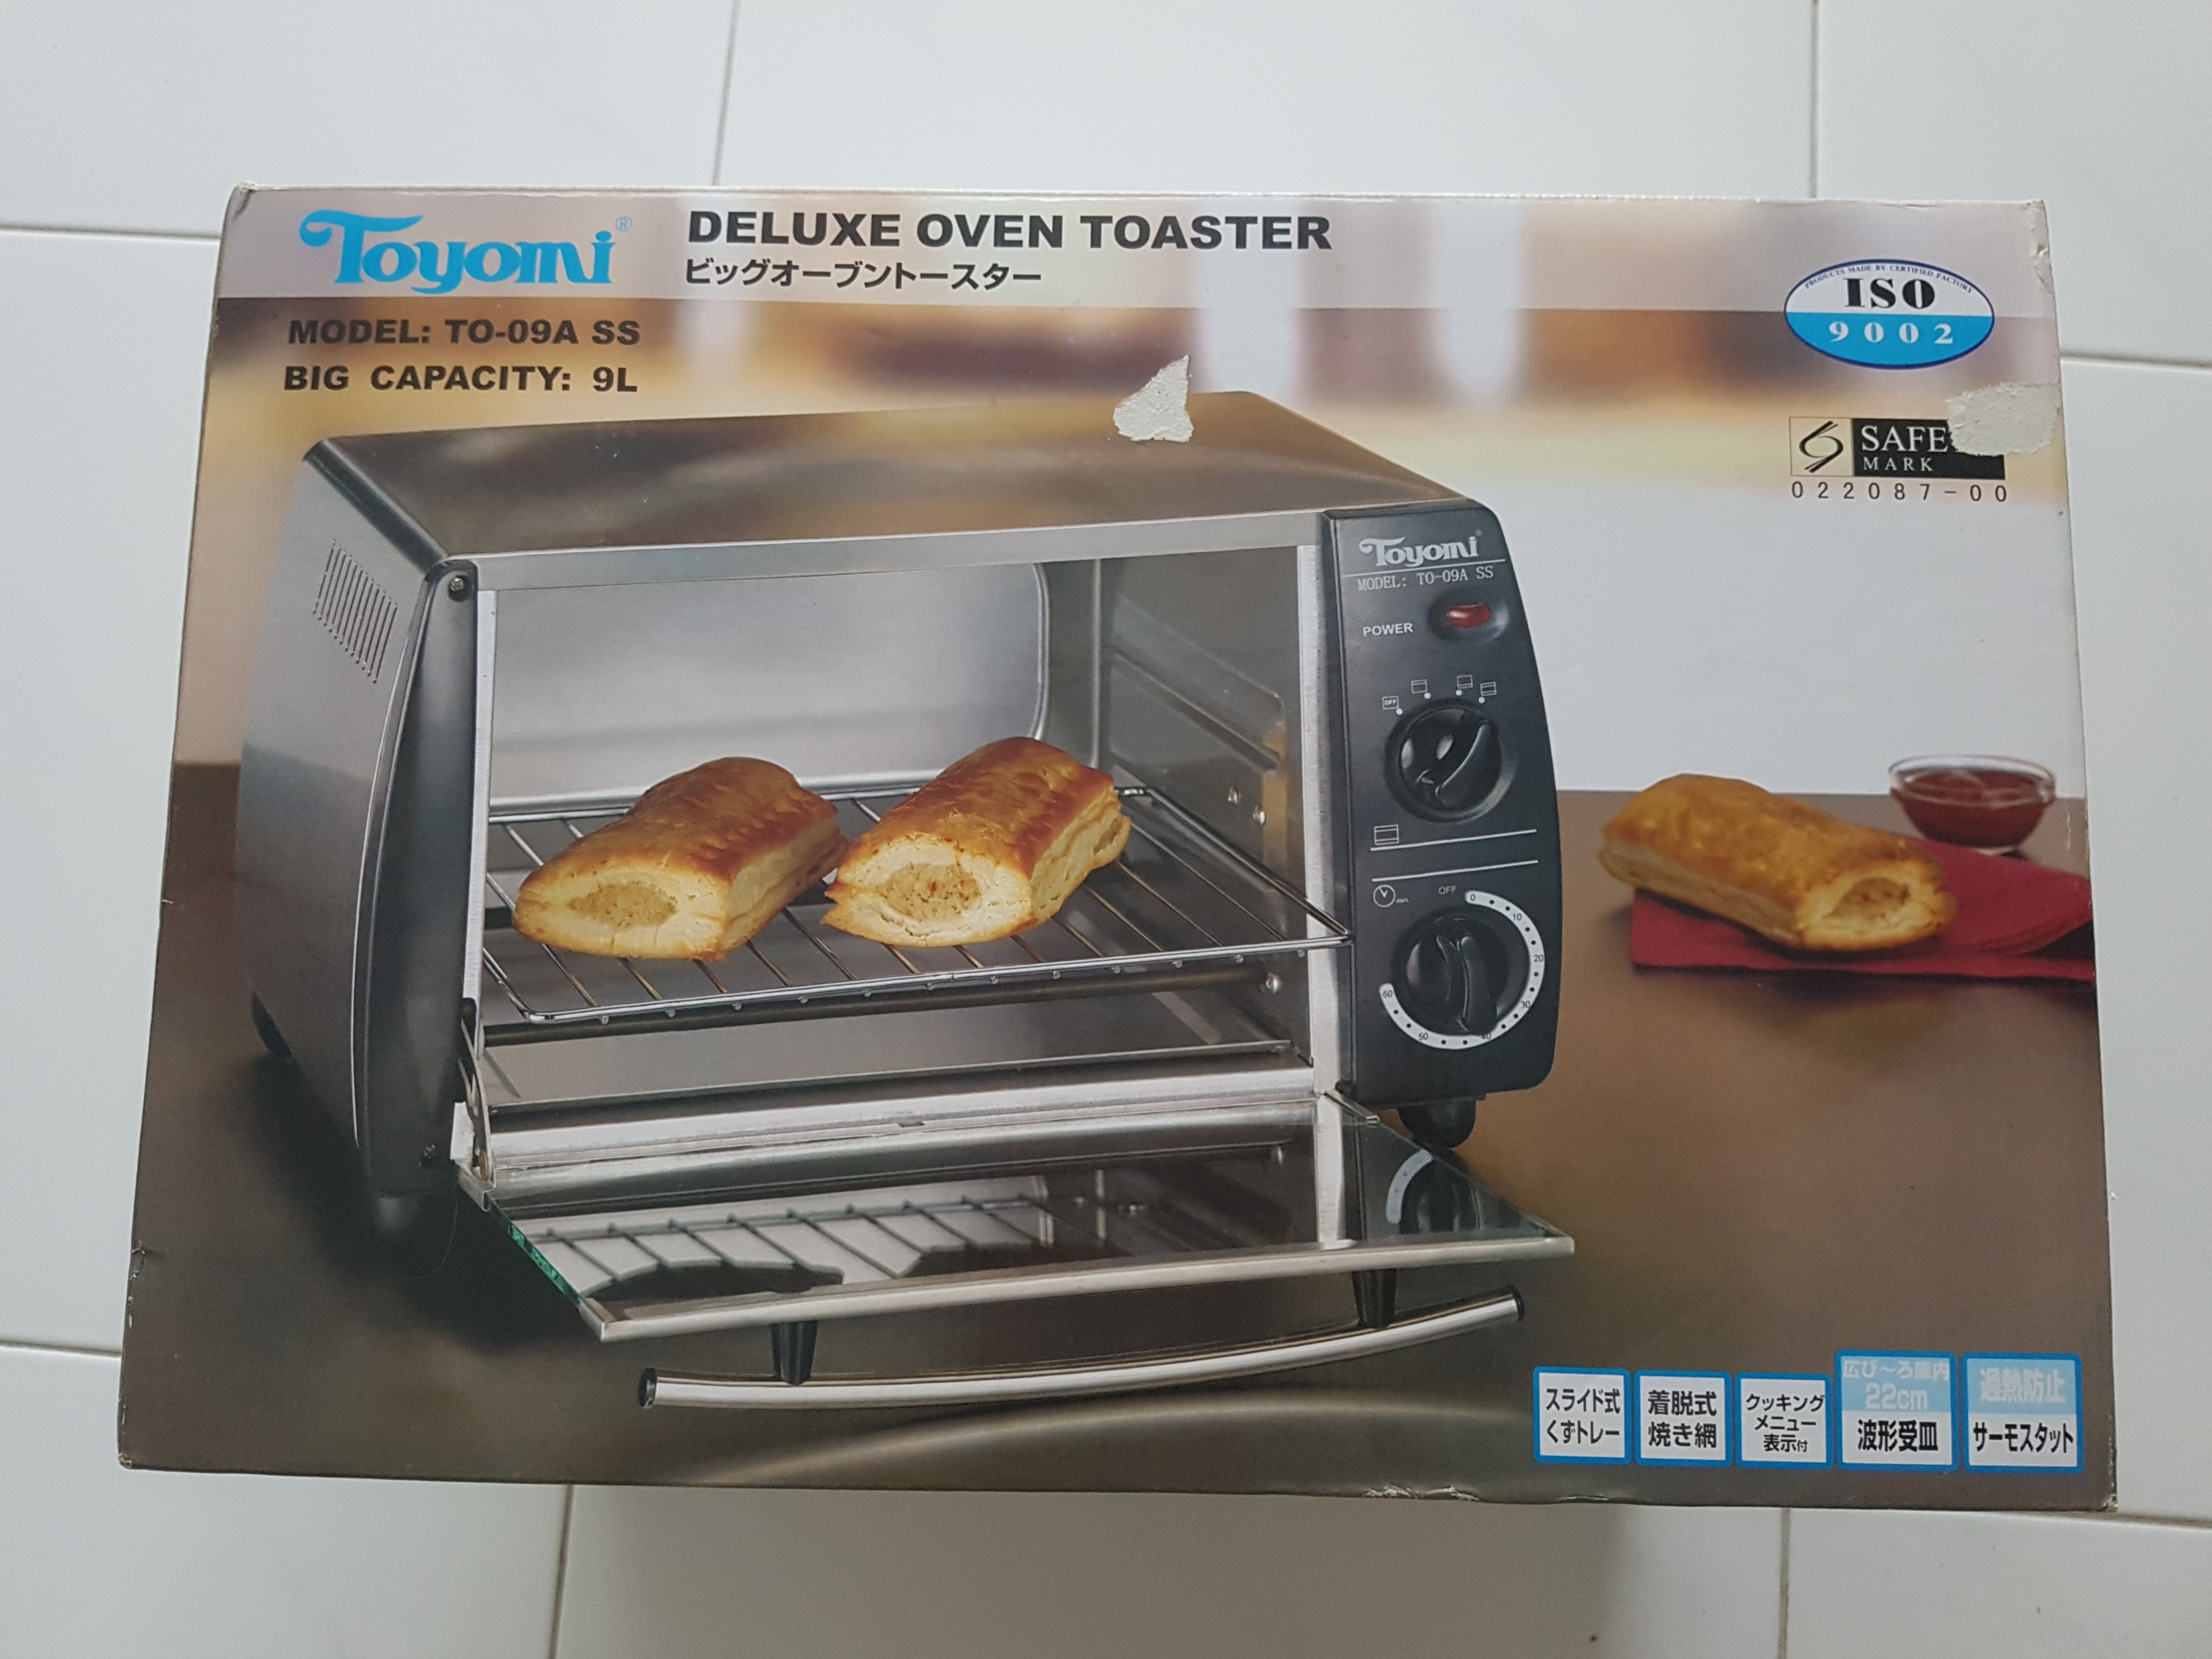 convection brands hei beach prod spin qlt wid toaster slice hamilton p oven inc